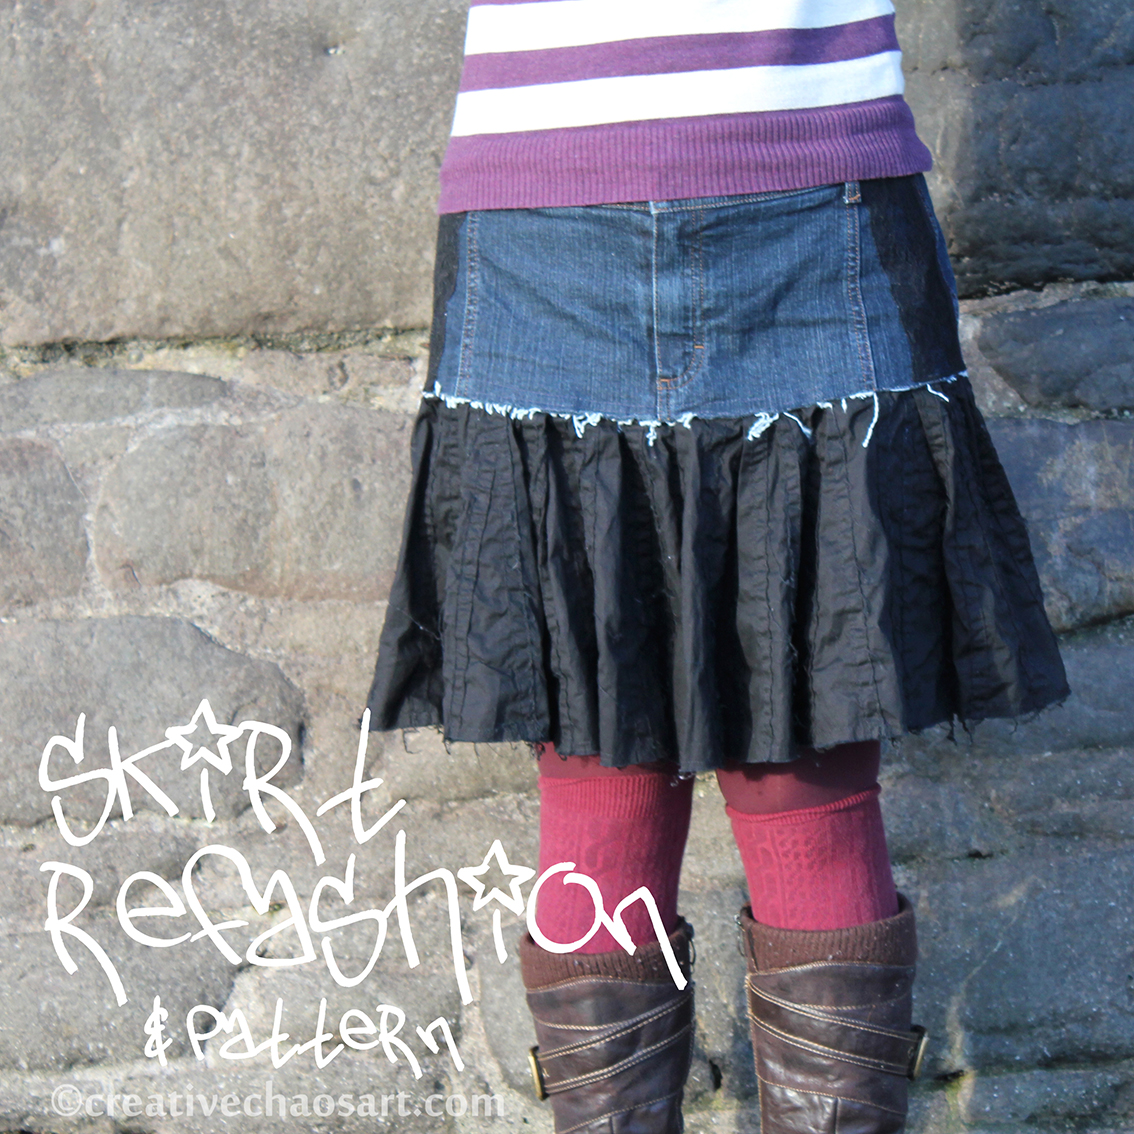 http://creativechaosart.blogspot.co.uk/2013/02/skirt-refashion-pattern.html